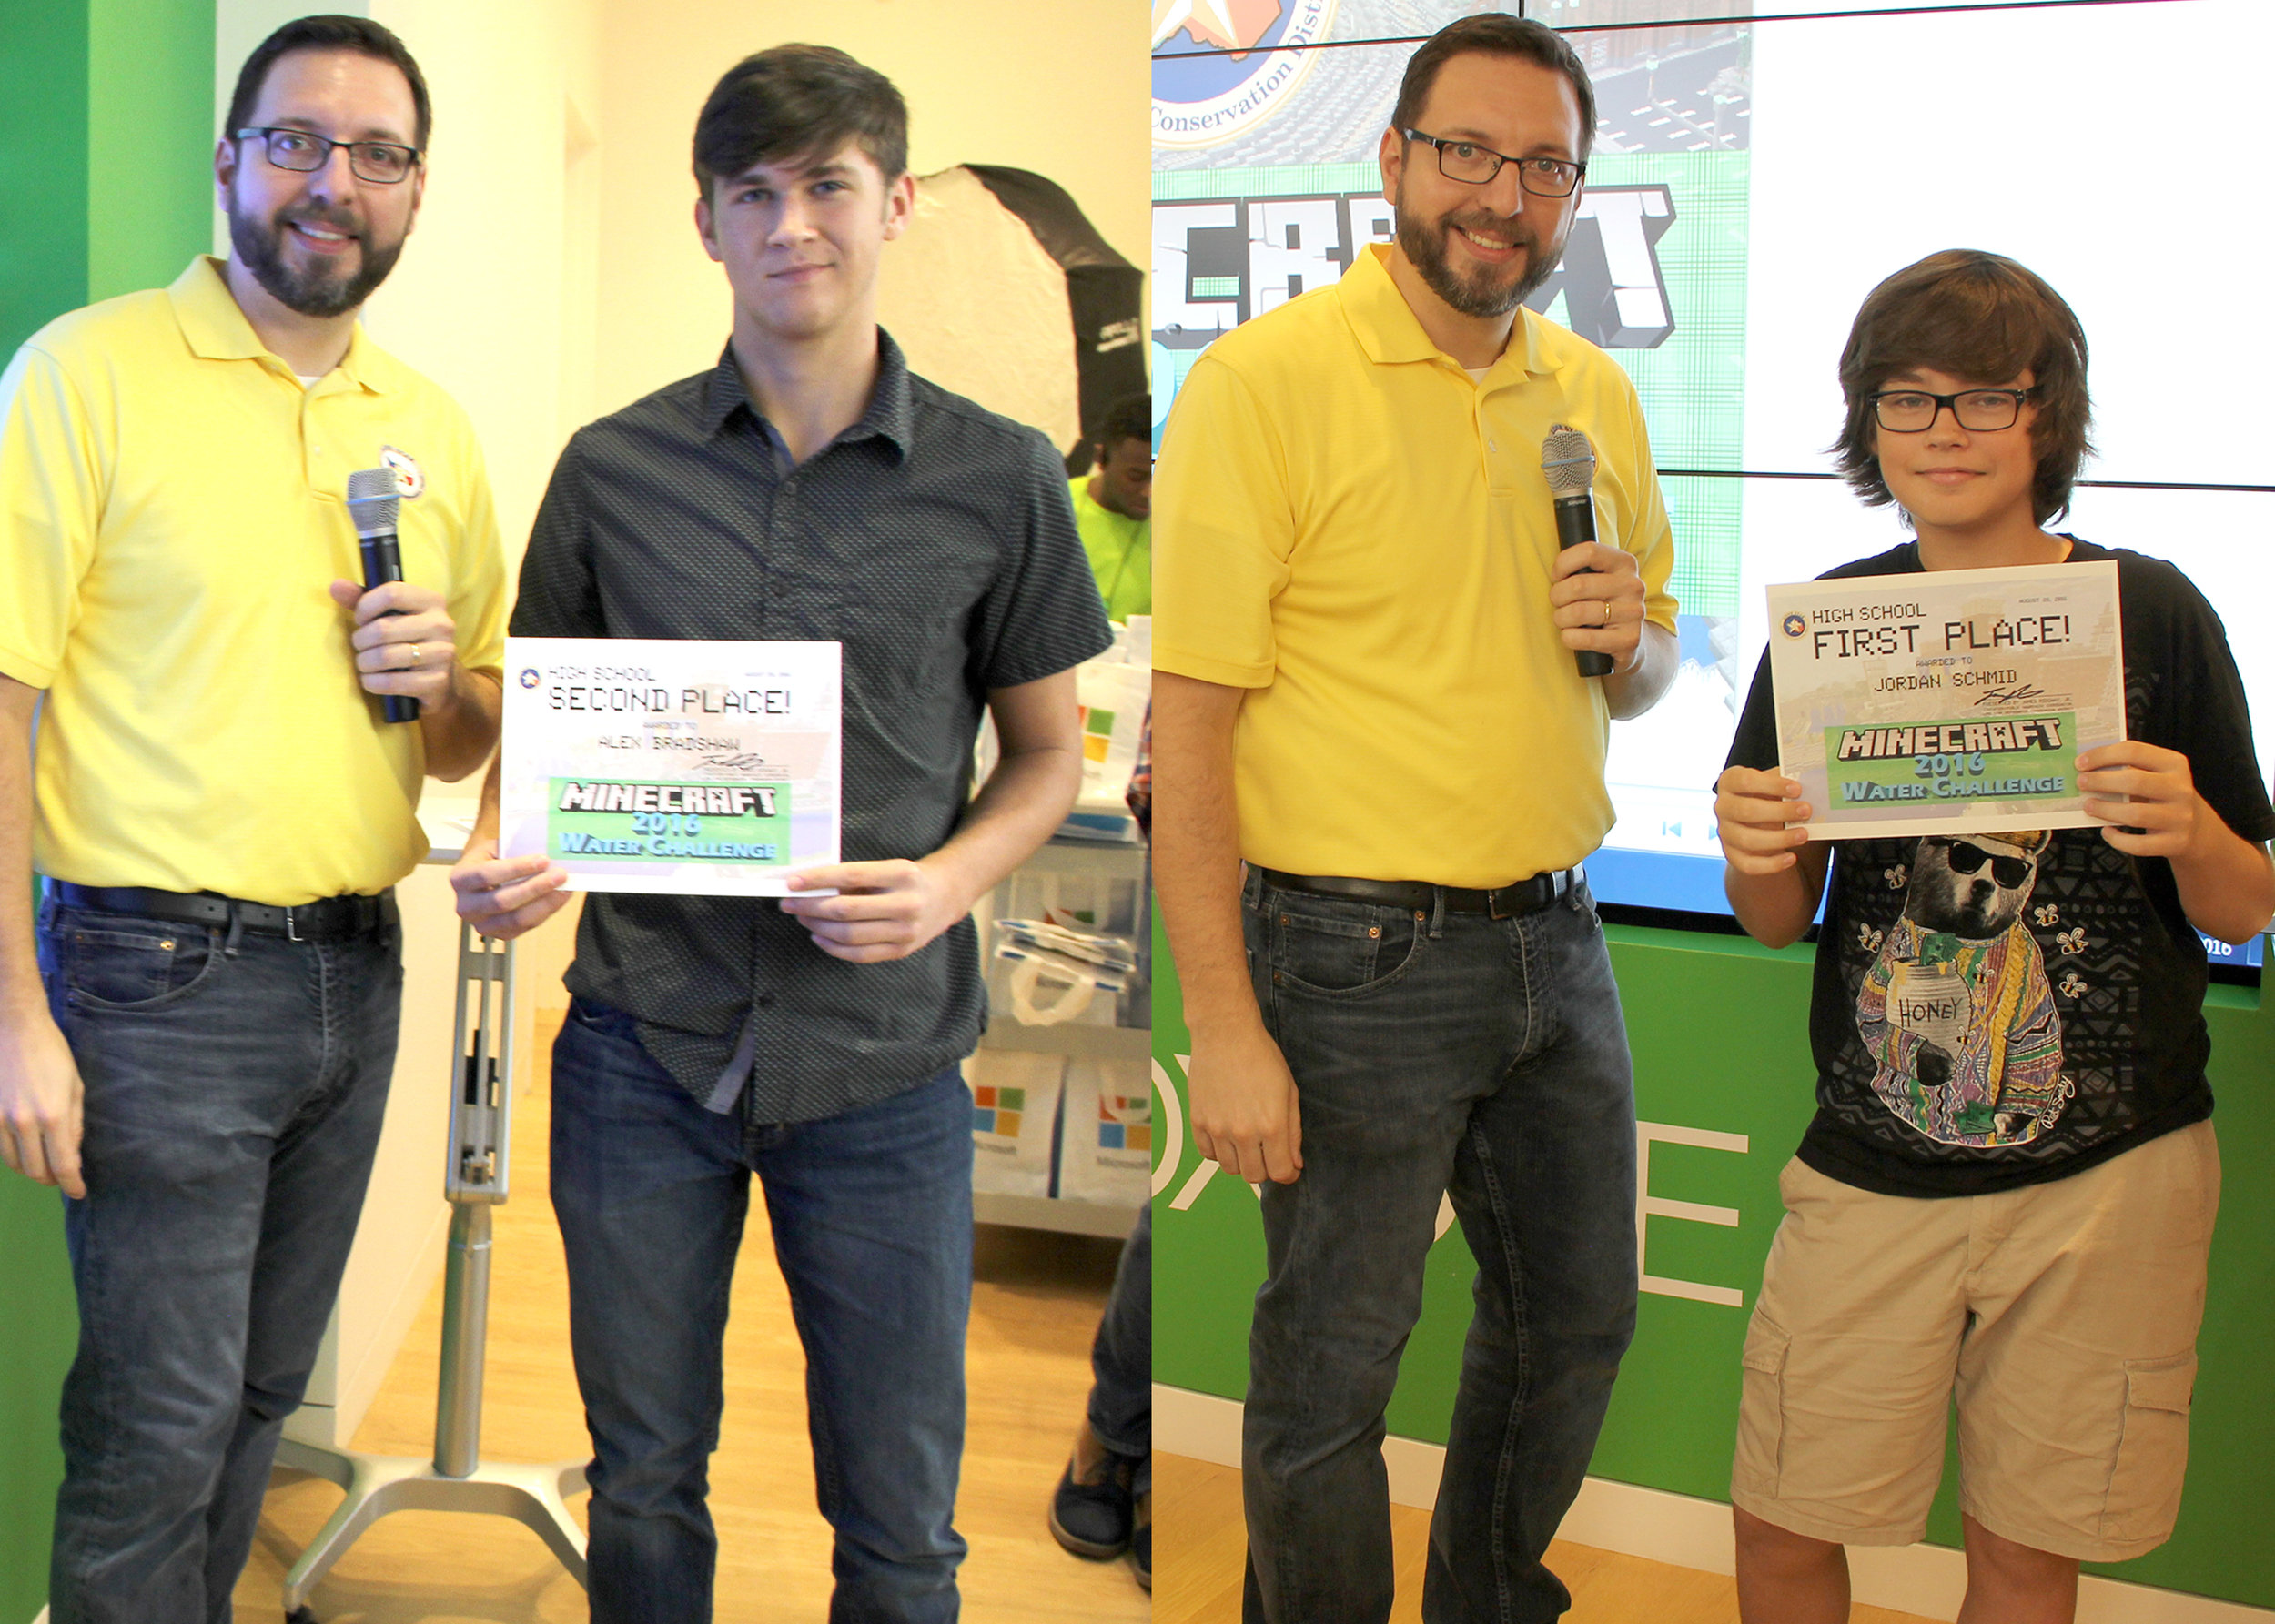 LSGCD's 2016 Minecraft Water Challenge winners—High School Group: James Ridgway, Jr., LSGCD education/public awareness coordinator, wearing the yellow shirt, poses with, pictured left, 2nd-place winner, Alex Bradshaw, Splendora High School, and pictured right, 1st-place winner, Jordan Schmid, Montgomery High School. Not pictured is 3rd-place winner, Houston Bailey, Magnolia High School.